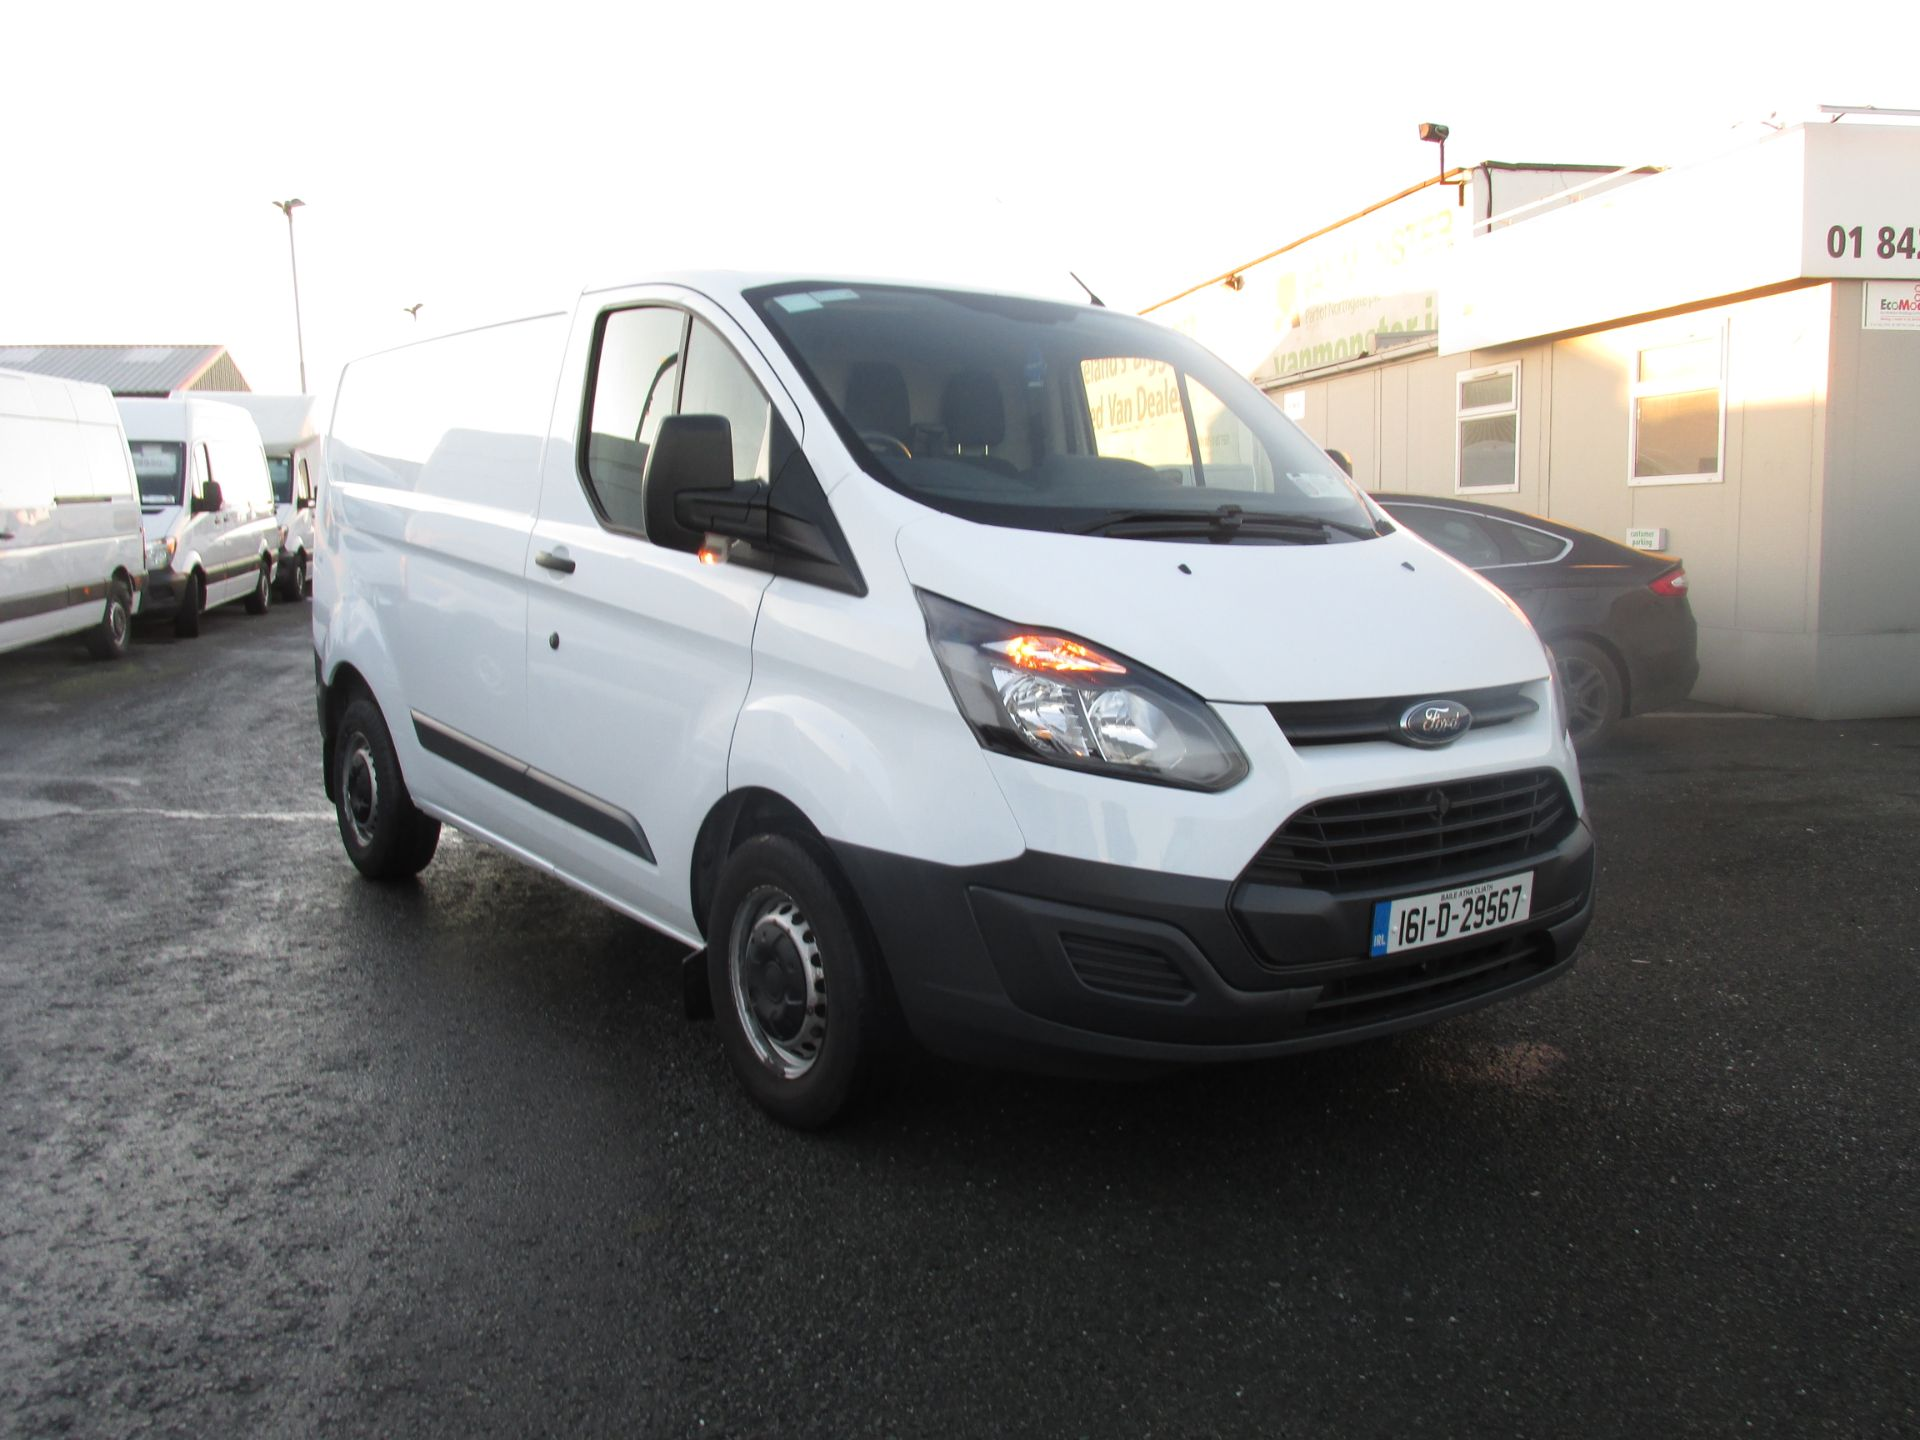 2016 Ford Transit Custom 290 LR P/V   -  OVER  100  VANS ON VIEW  IN  VAN MONSTER     SANTRY   - (161D29567)